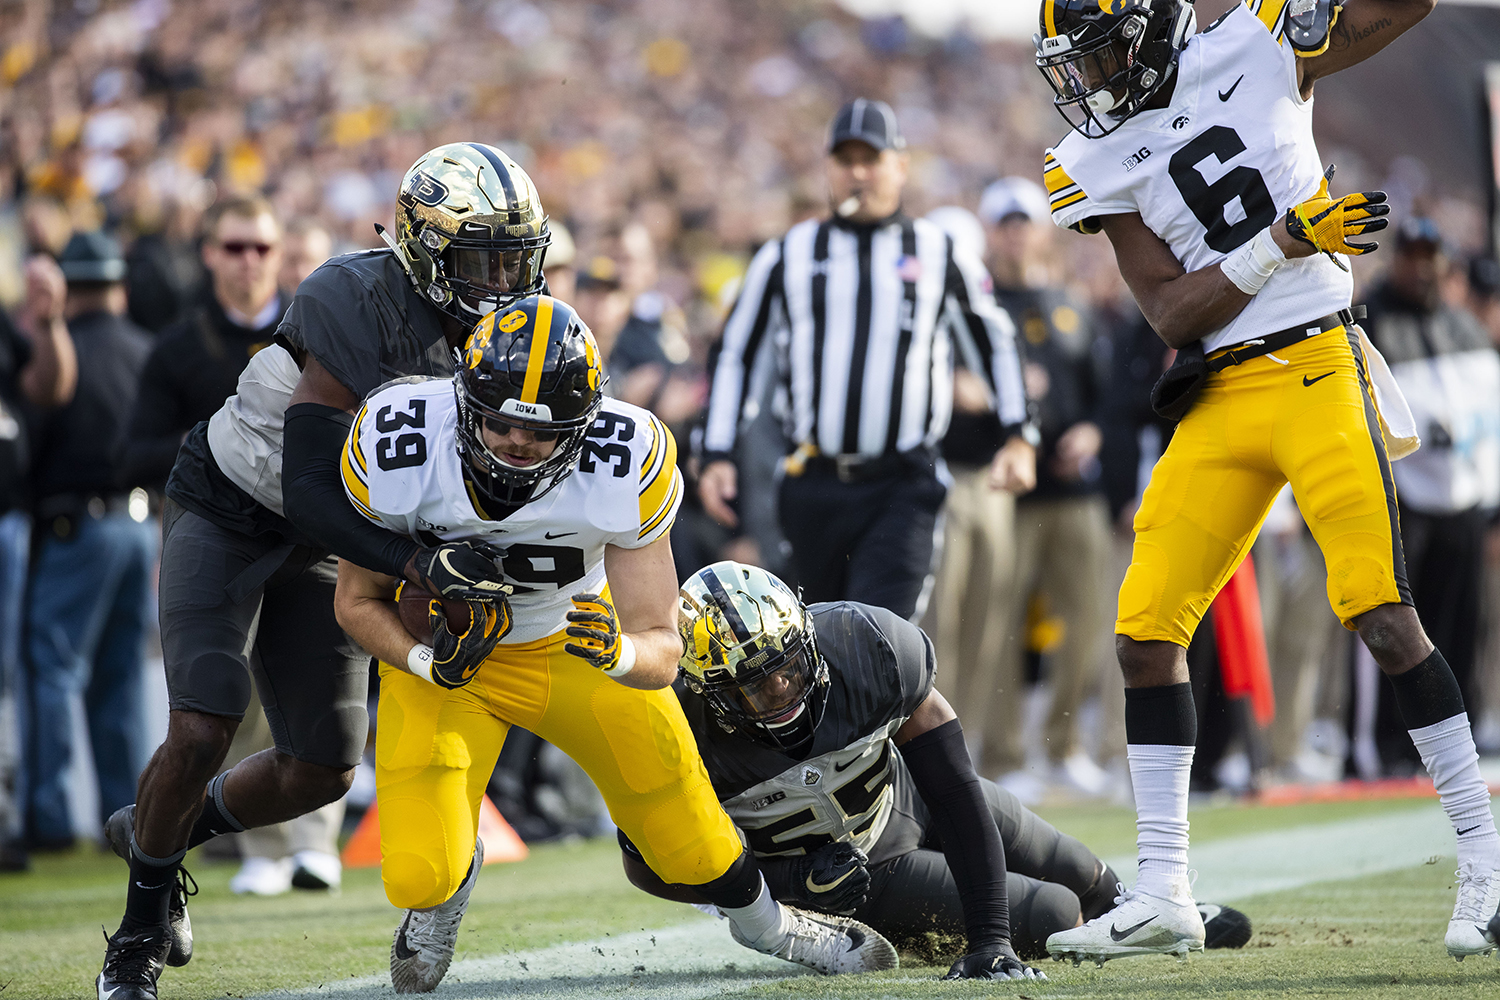 Iowa+tight+end+Nate+Wieting+gets+tackled++by+Purdue+defense+during+the+Iowa%2FPurdue+game+at+Ross-Ade+Stadium+in+West+Lafayette%2C+Ind.+The+Boilermakers+defeated+the+Hawkeyes%2C+38-36%2C+with+a+last+second+field+goal.+